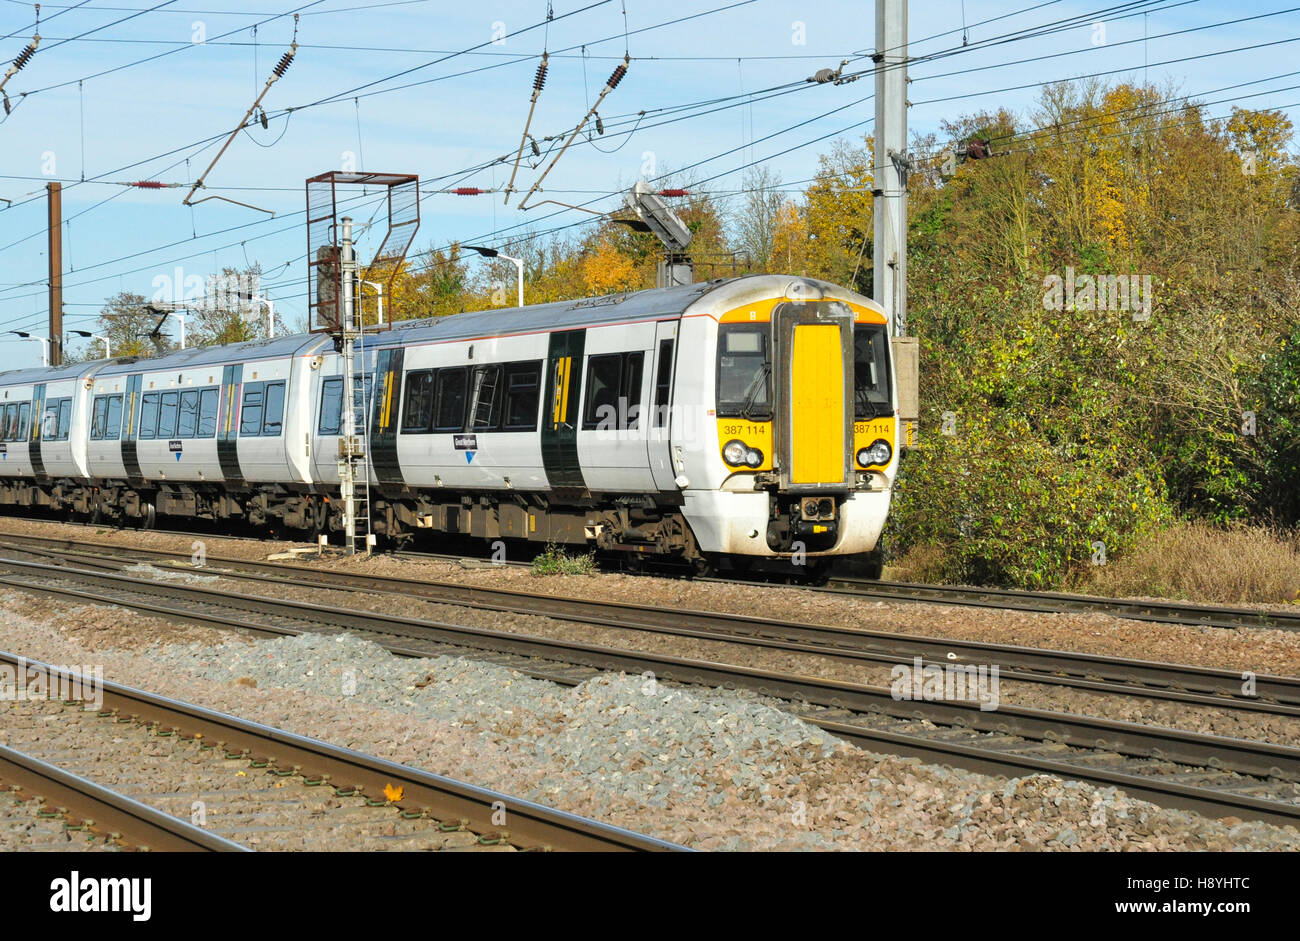 Class 387 EMU heads south from Hitchin, Hertfordshire, England, UK - Stock Image